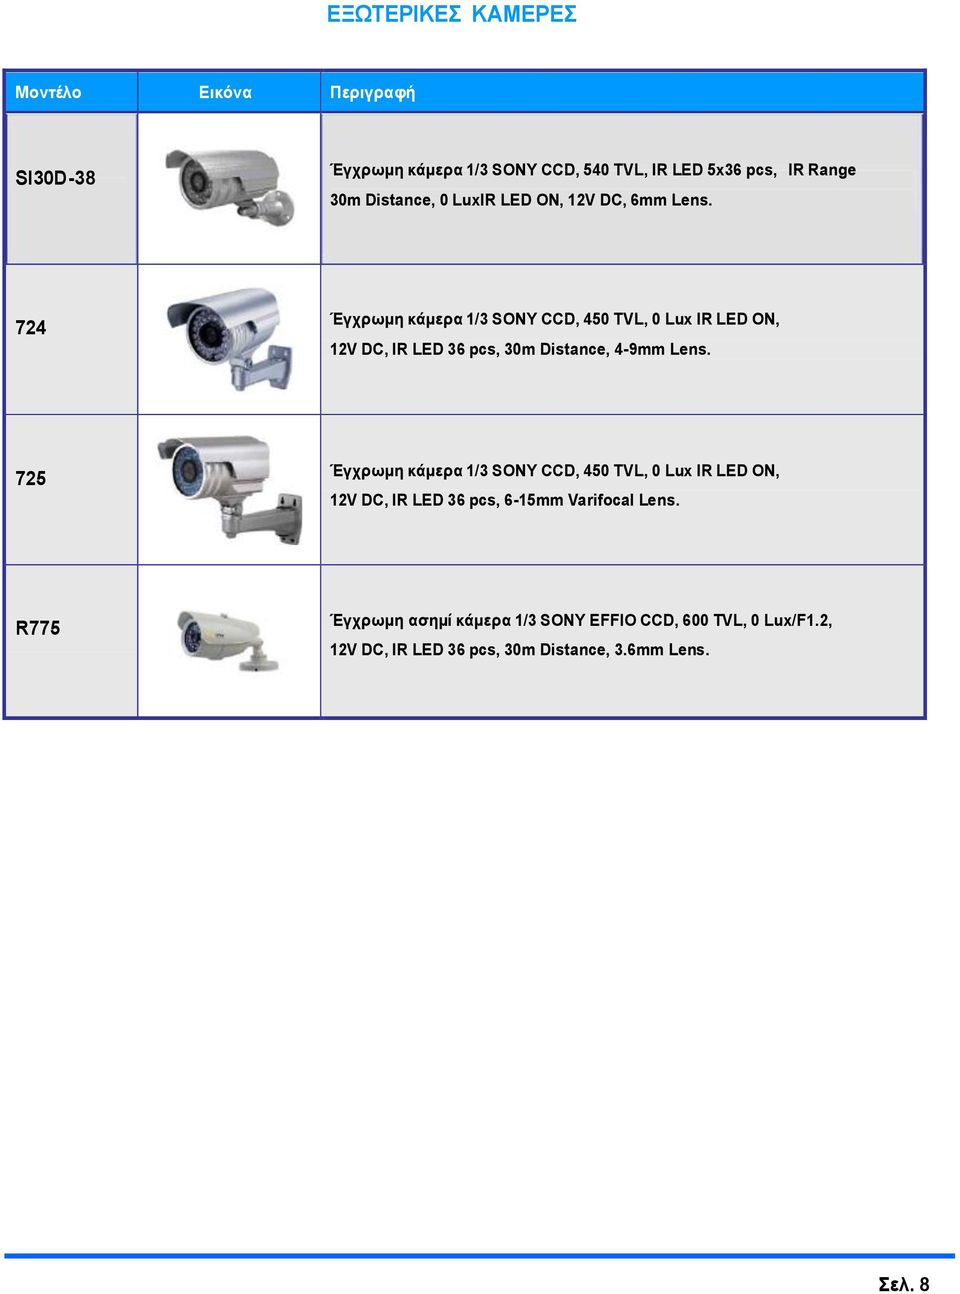 724 Έγρξσκε θάκεξα 1/3 SONY CCD, 450 TVL, 0 Lux IR LED ON, 12V DC, IR LED 36 pcs, 30m Distance, 4-9mm Lens.